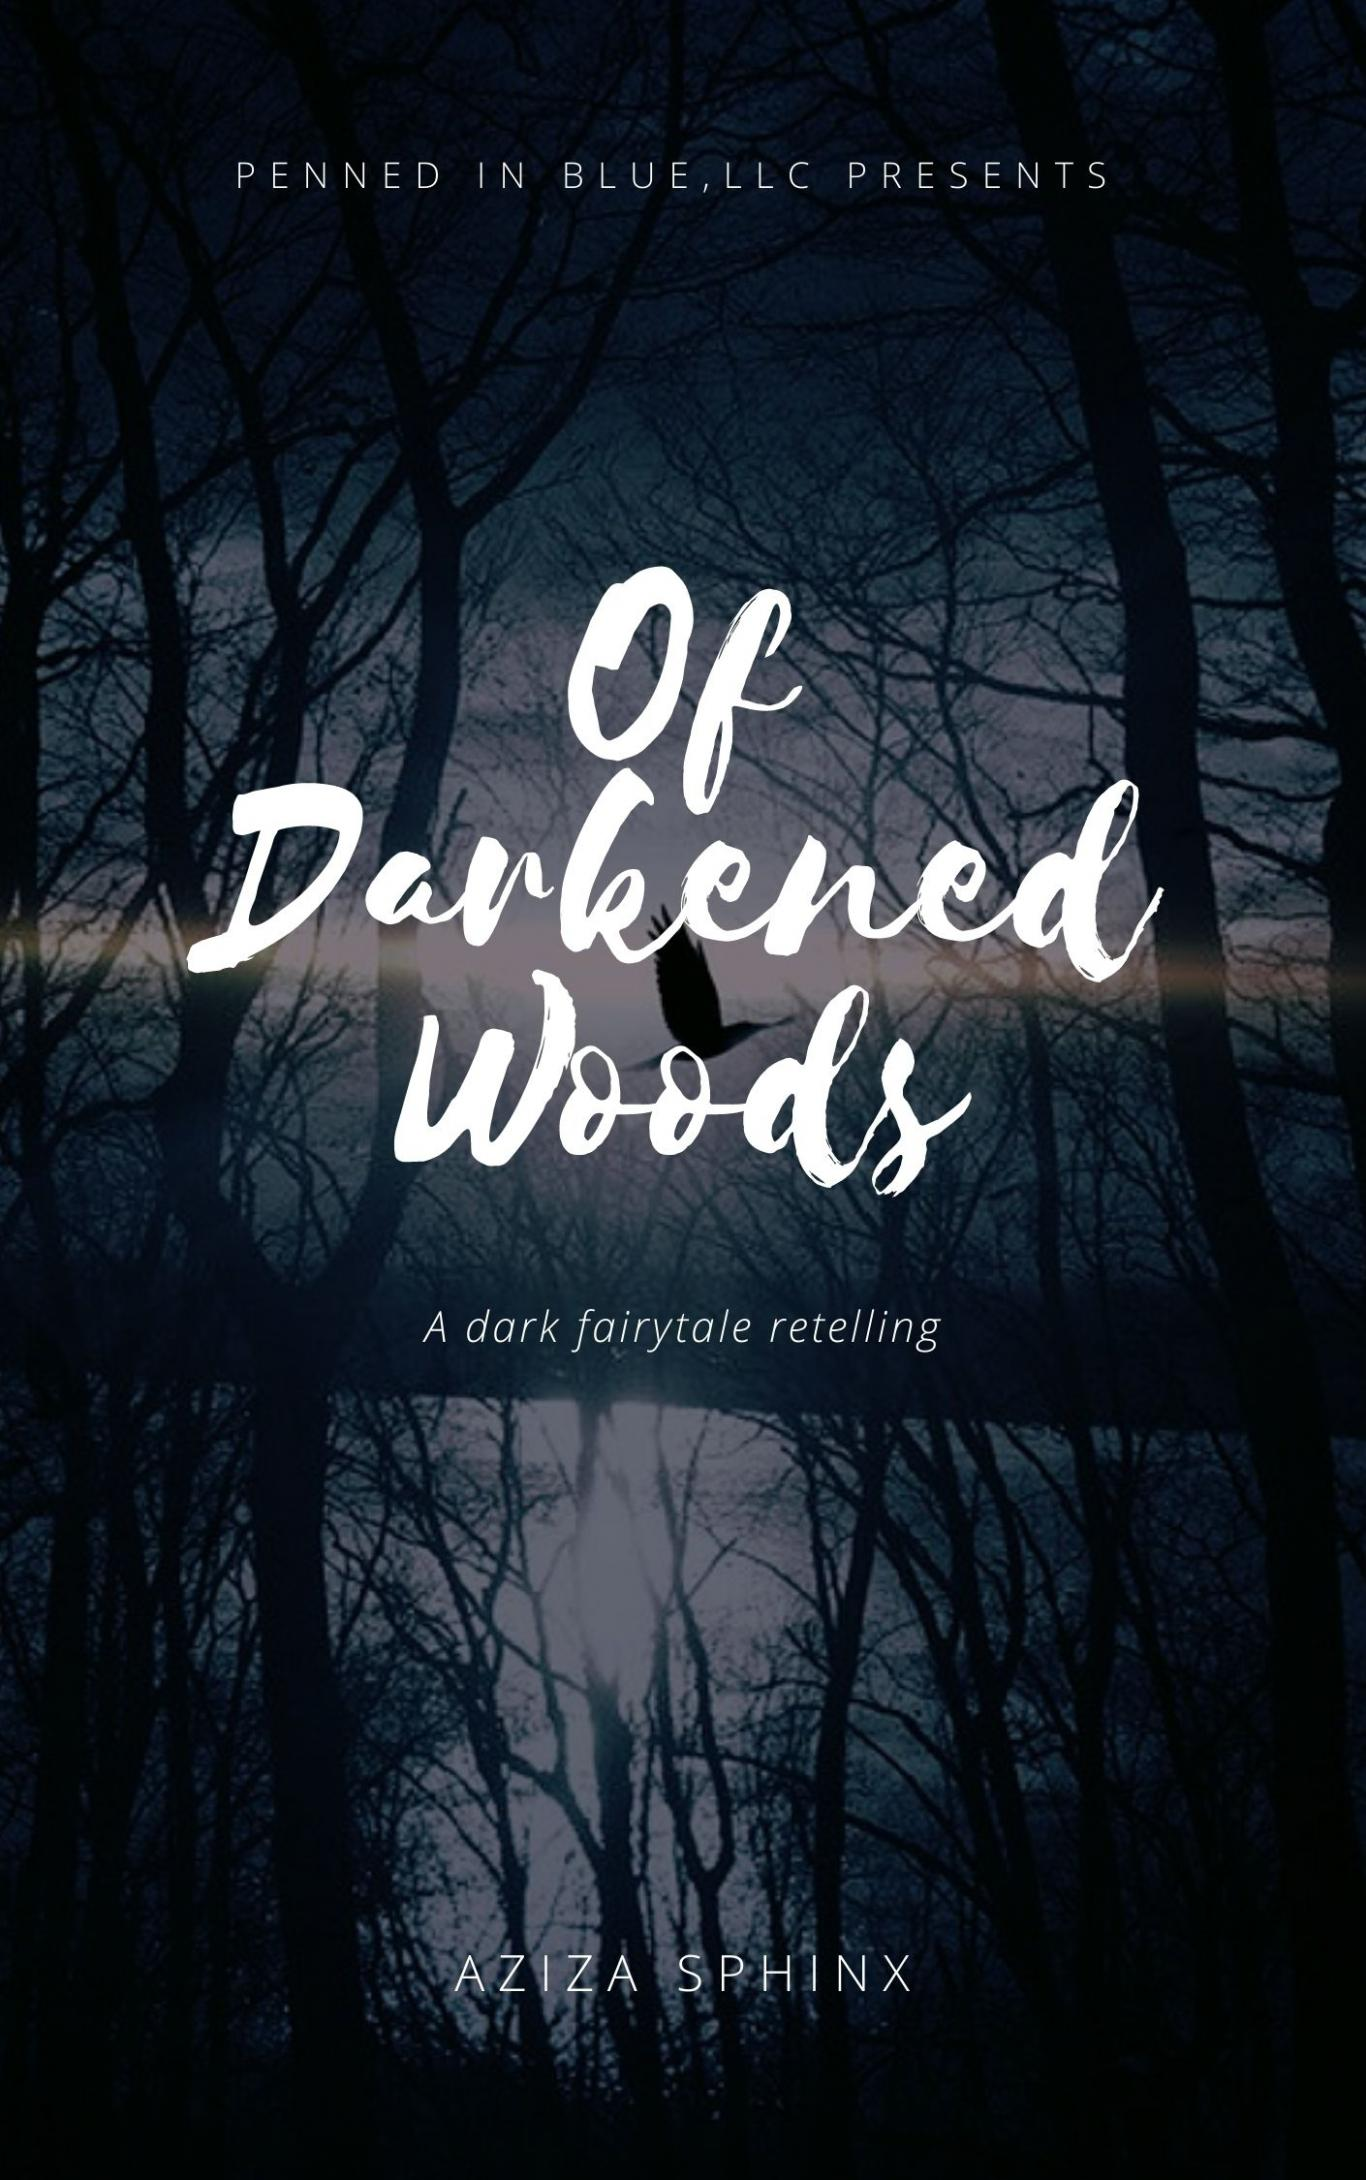 Of Darkened Woods